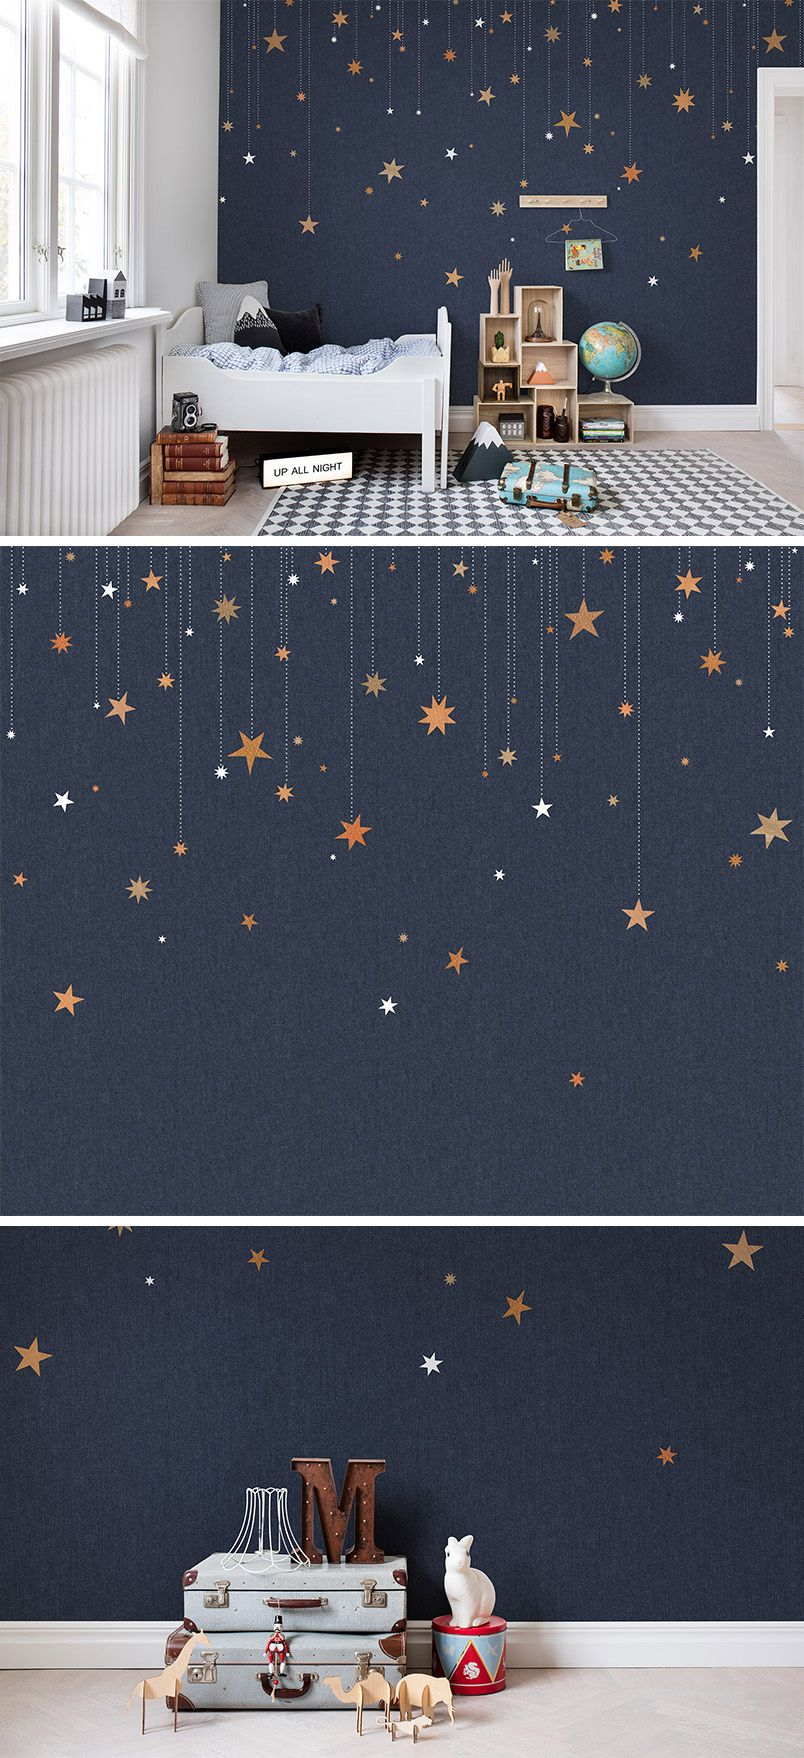 Stargazing wall murals kids rooms and nursery bedrooms wallpaper wall mural interior design kids room amipublicfo Image collections